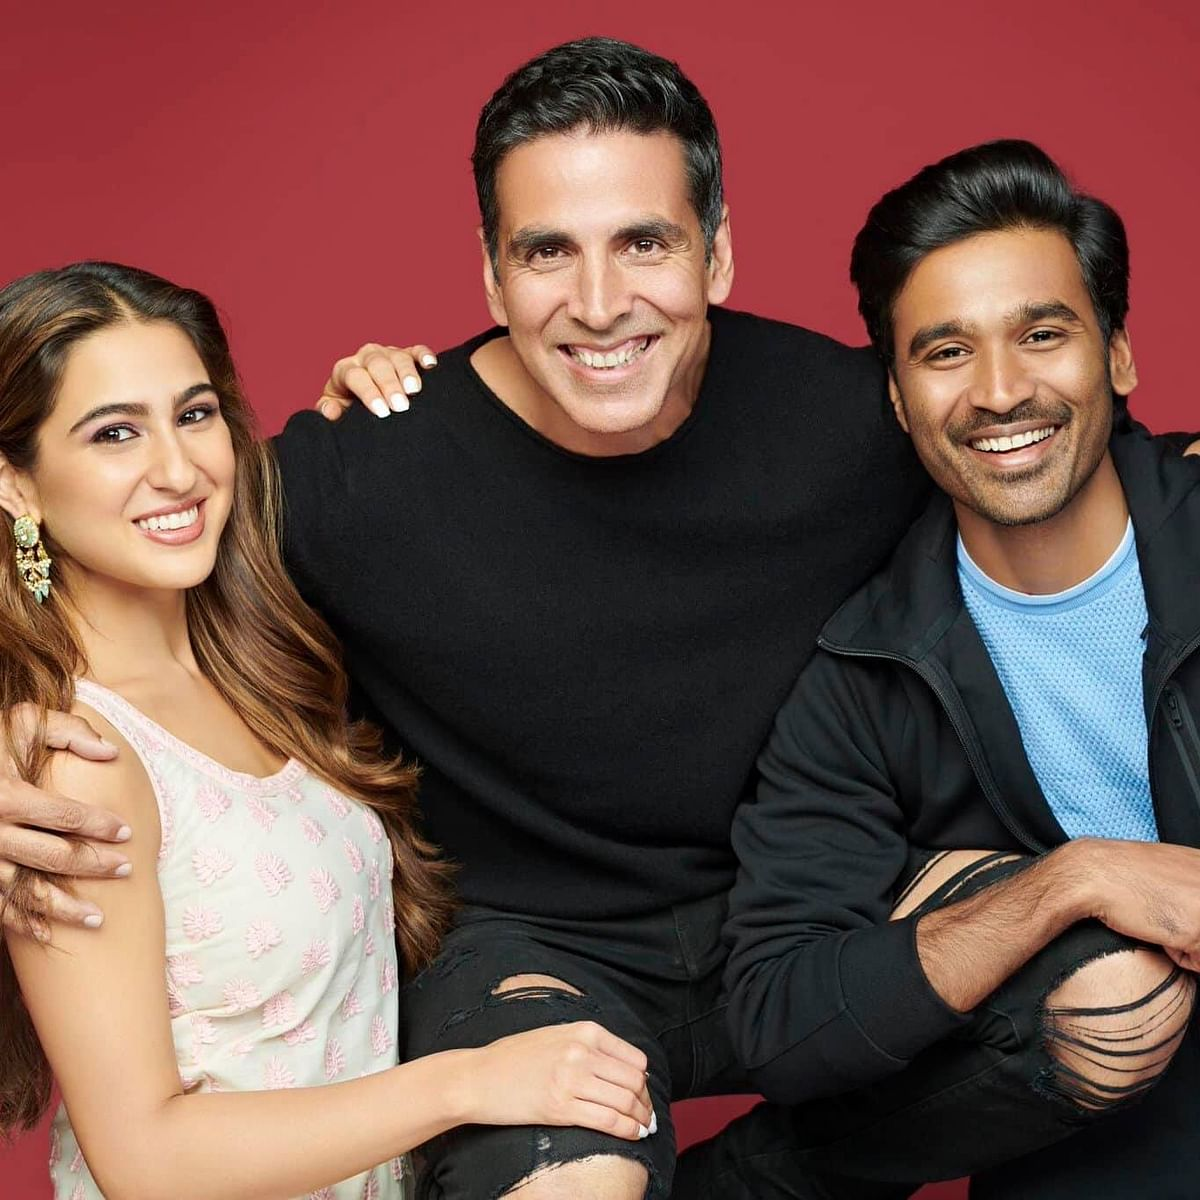 Atrangi Re: Aanand L Rai to put Akshay Kumar, Sara Ali Khan and Dhanush in an 'unseen space'